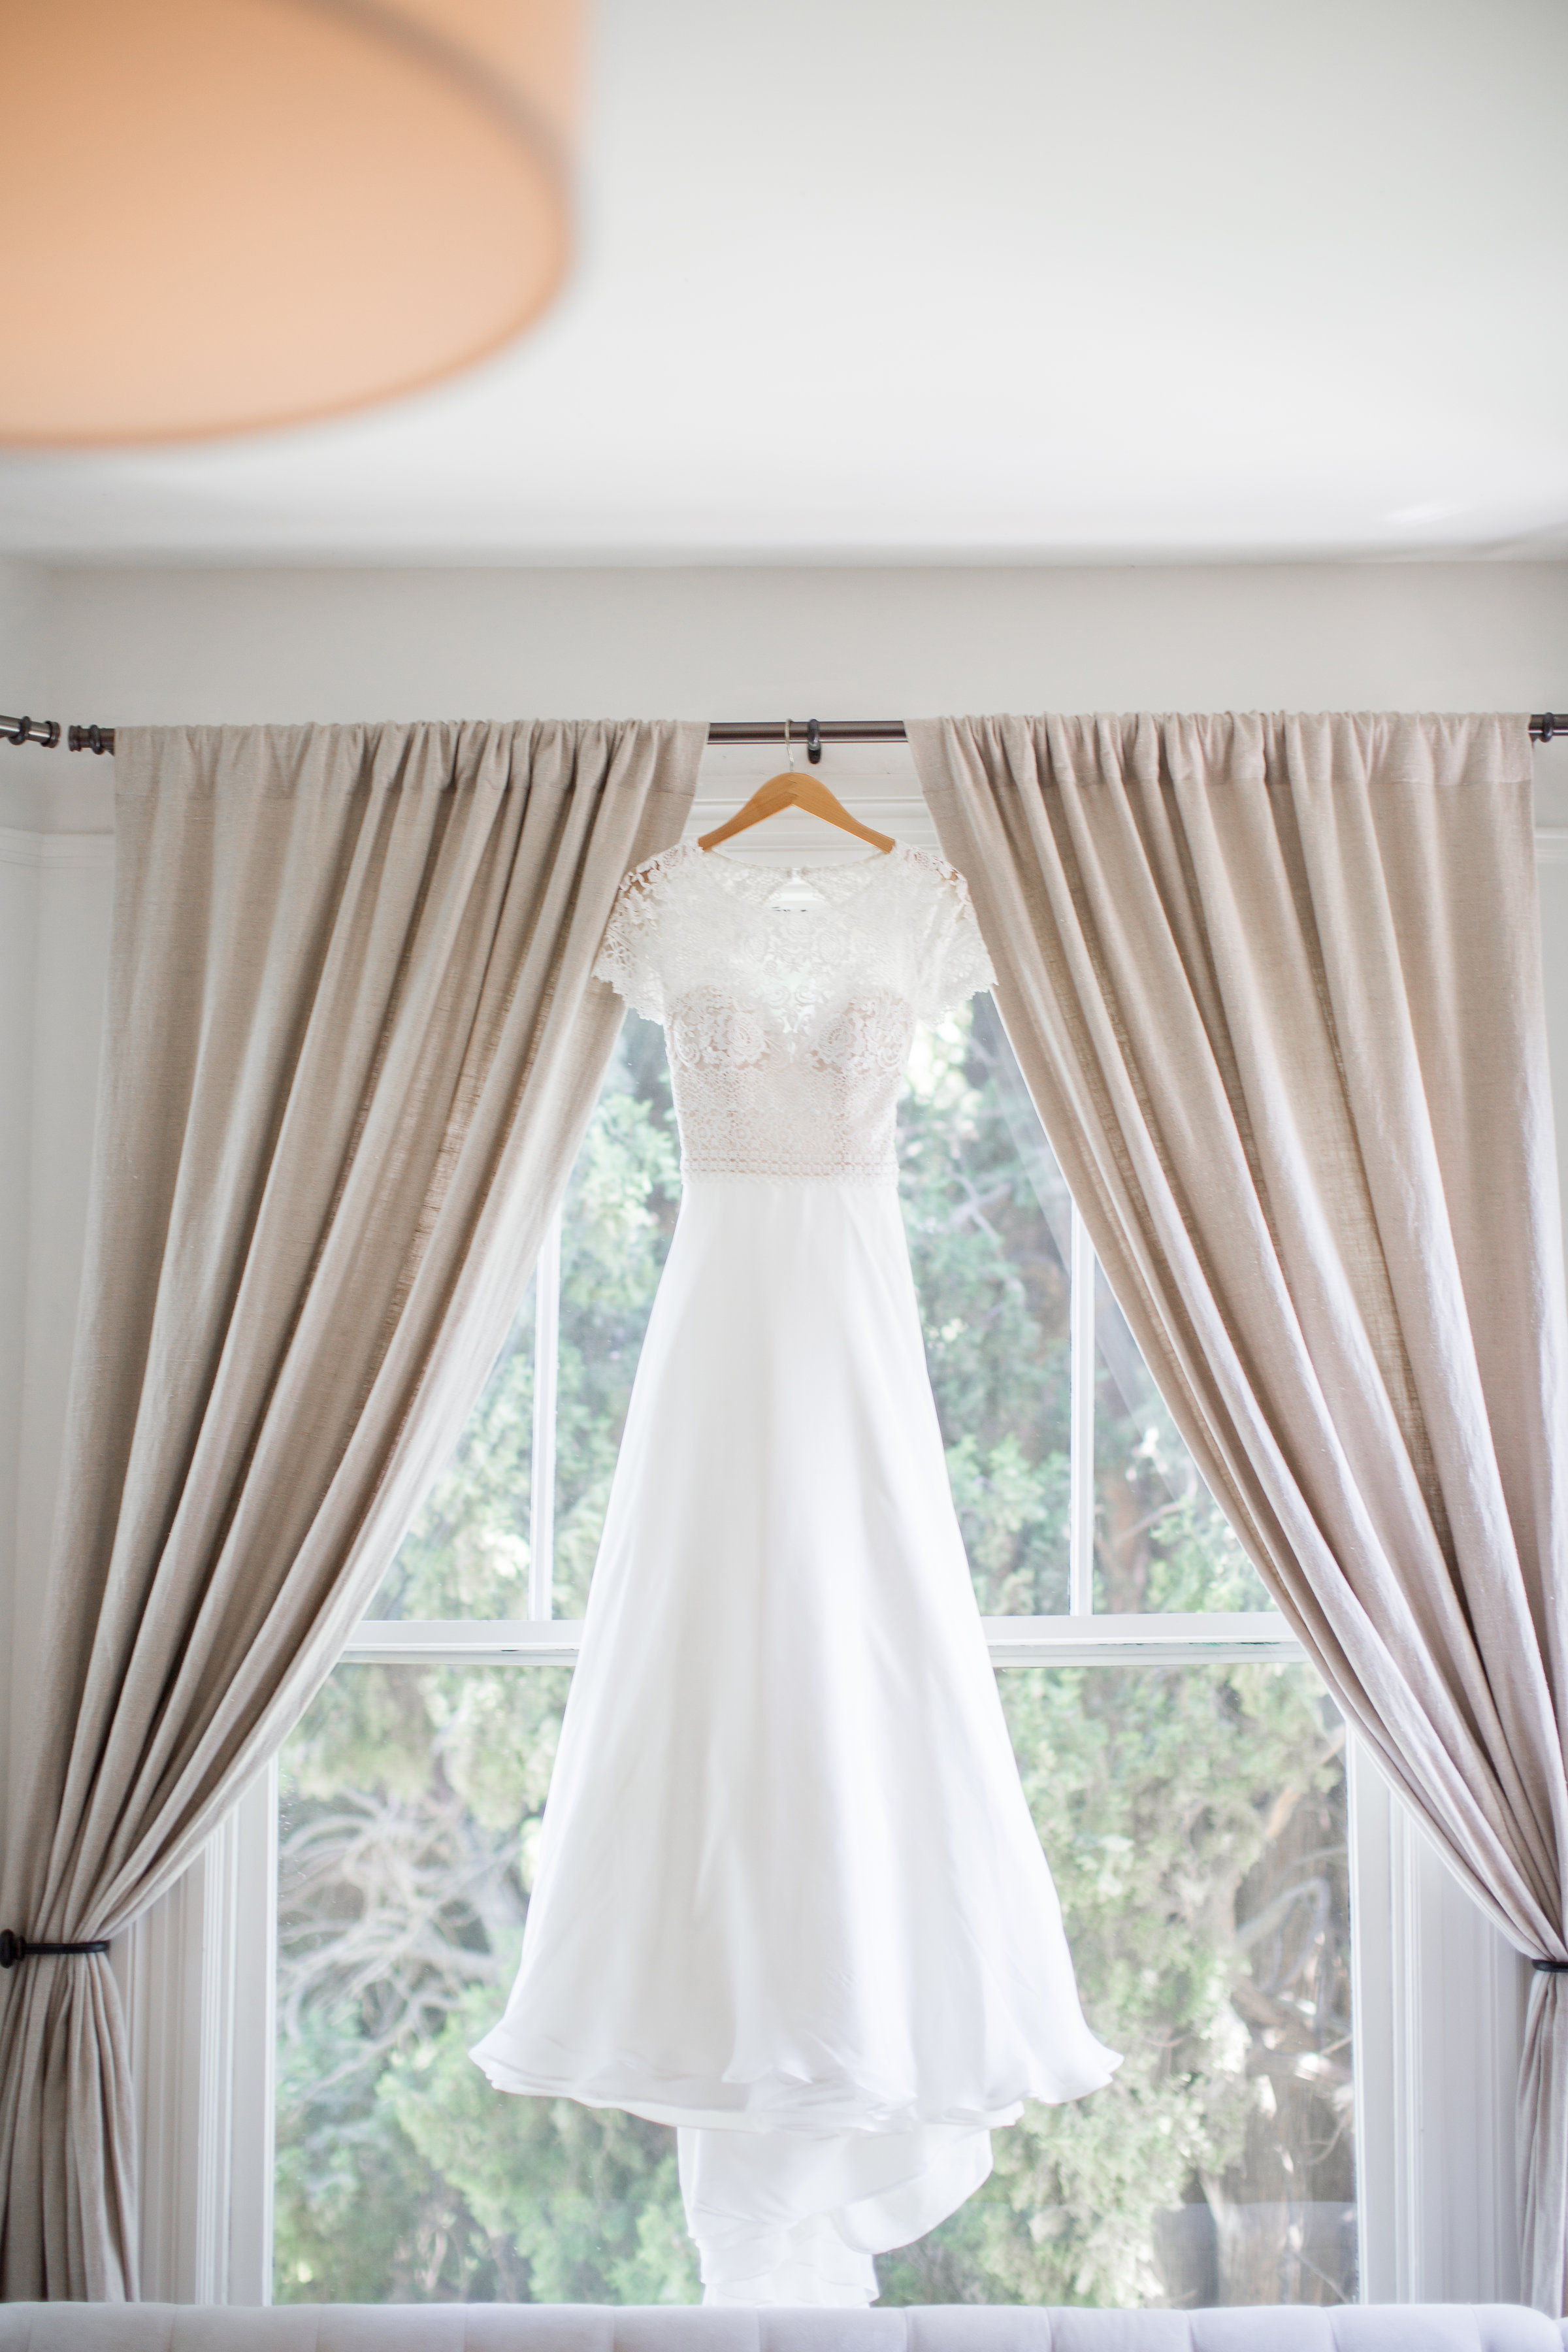 wedding_dress_in_window.jpg